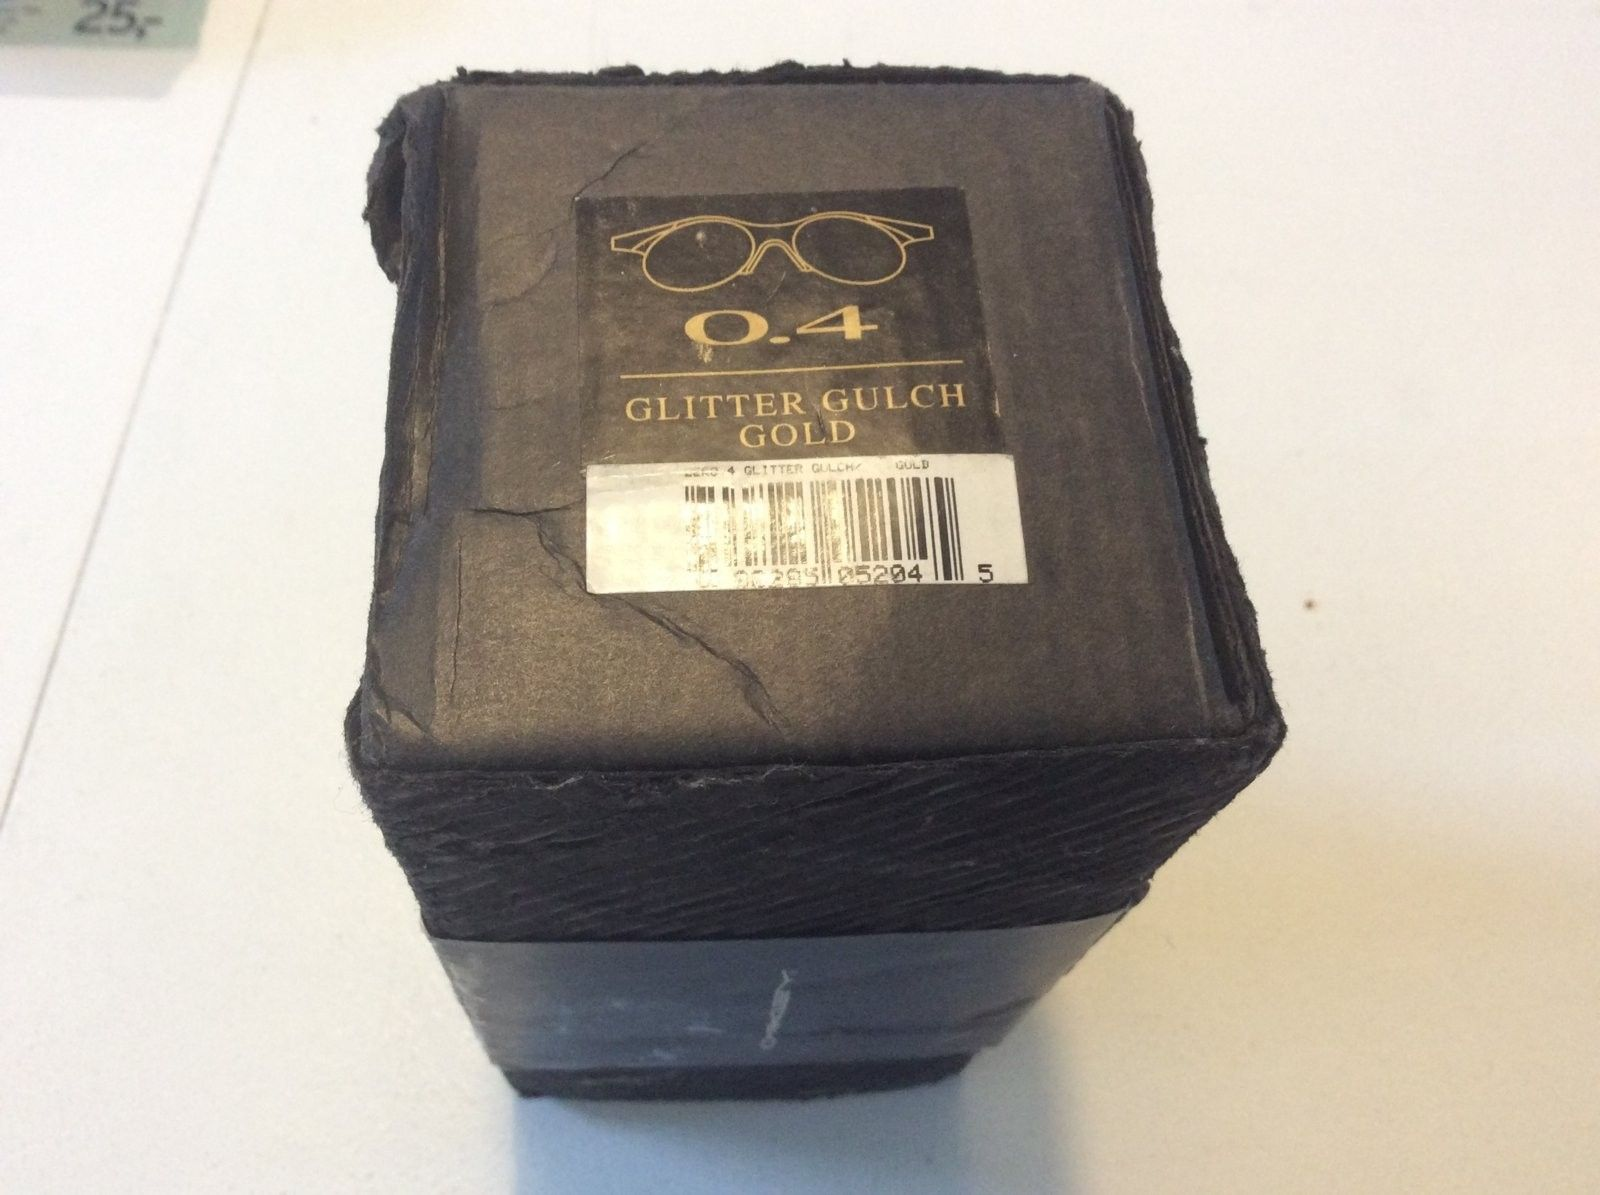 Zero 0.4 Glitter Gulch/Gold - with box.. - image.jpeg